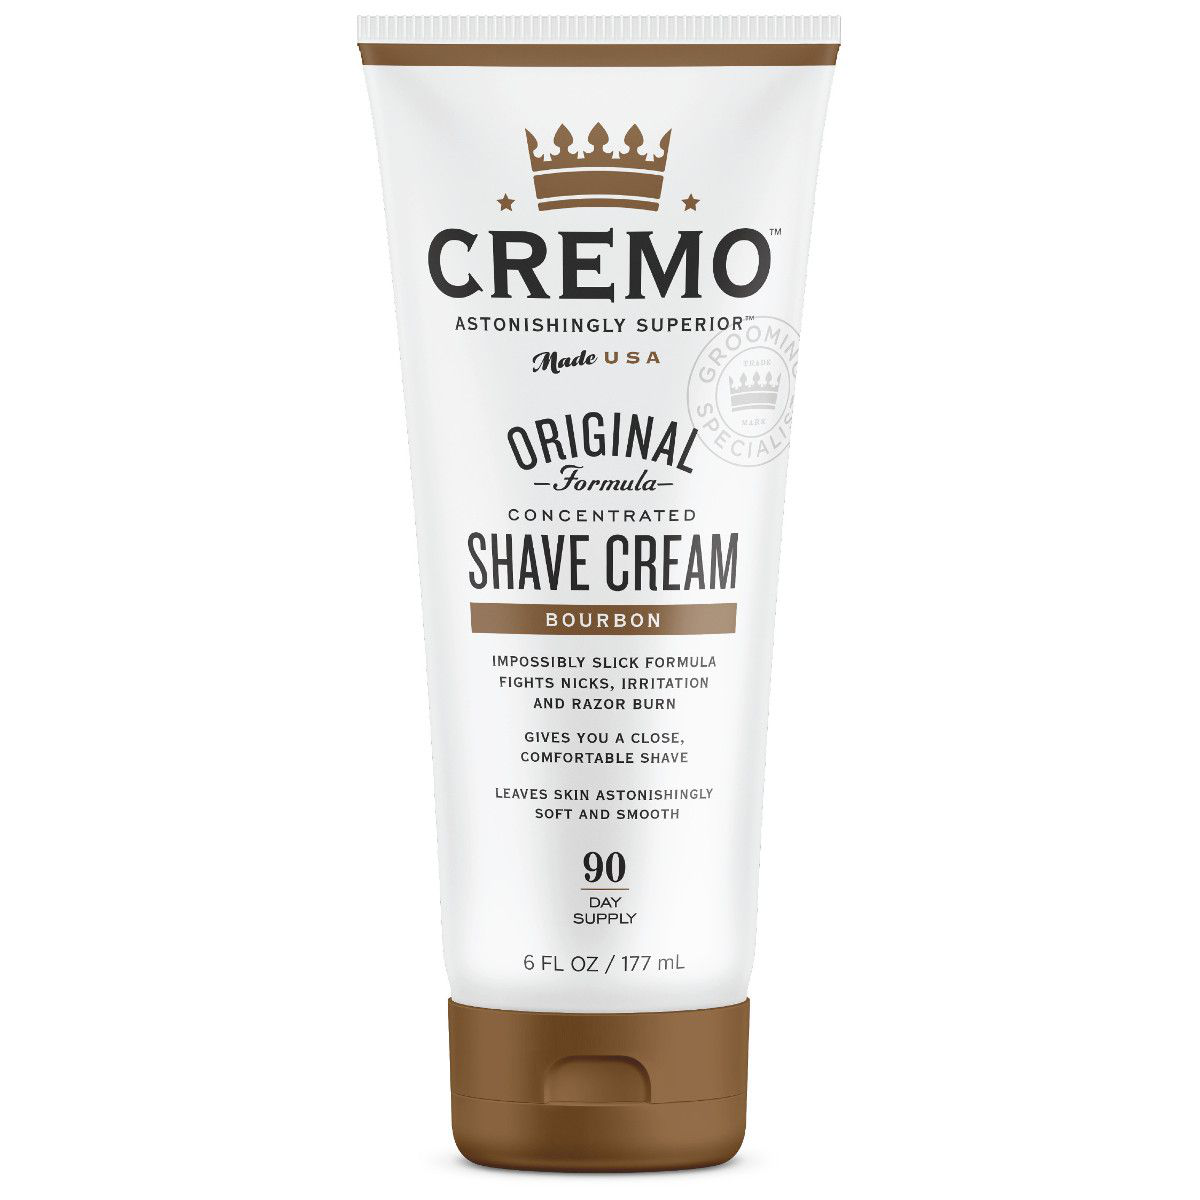 Cremo - Bourbon - Cream image